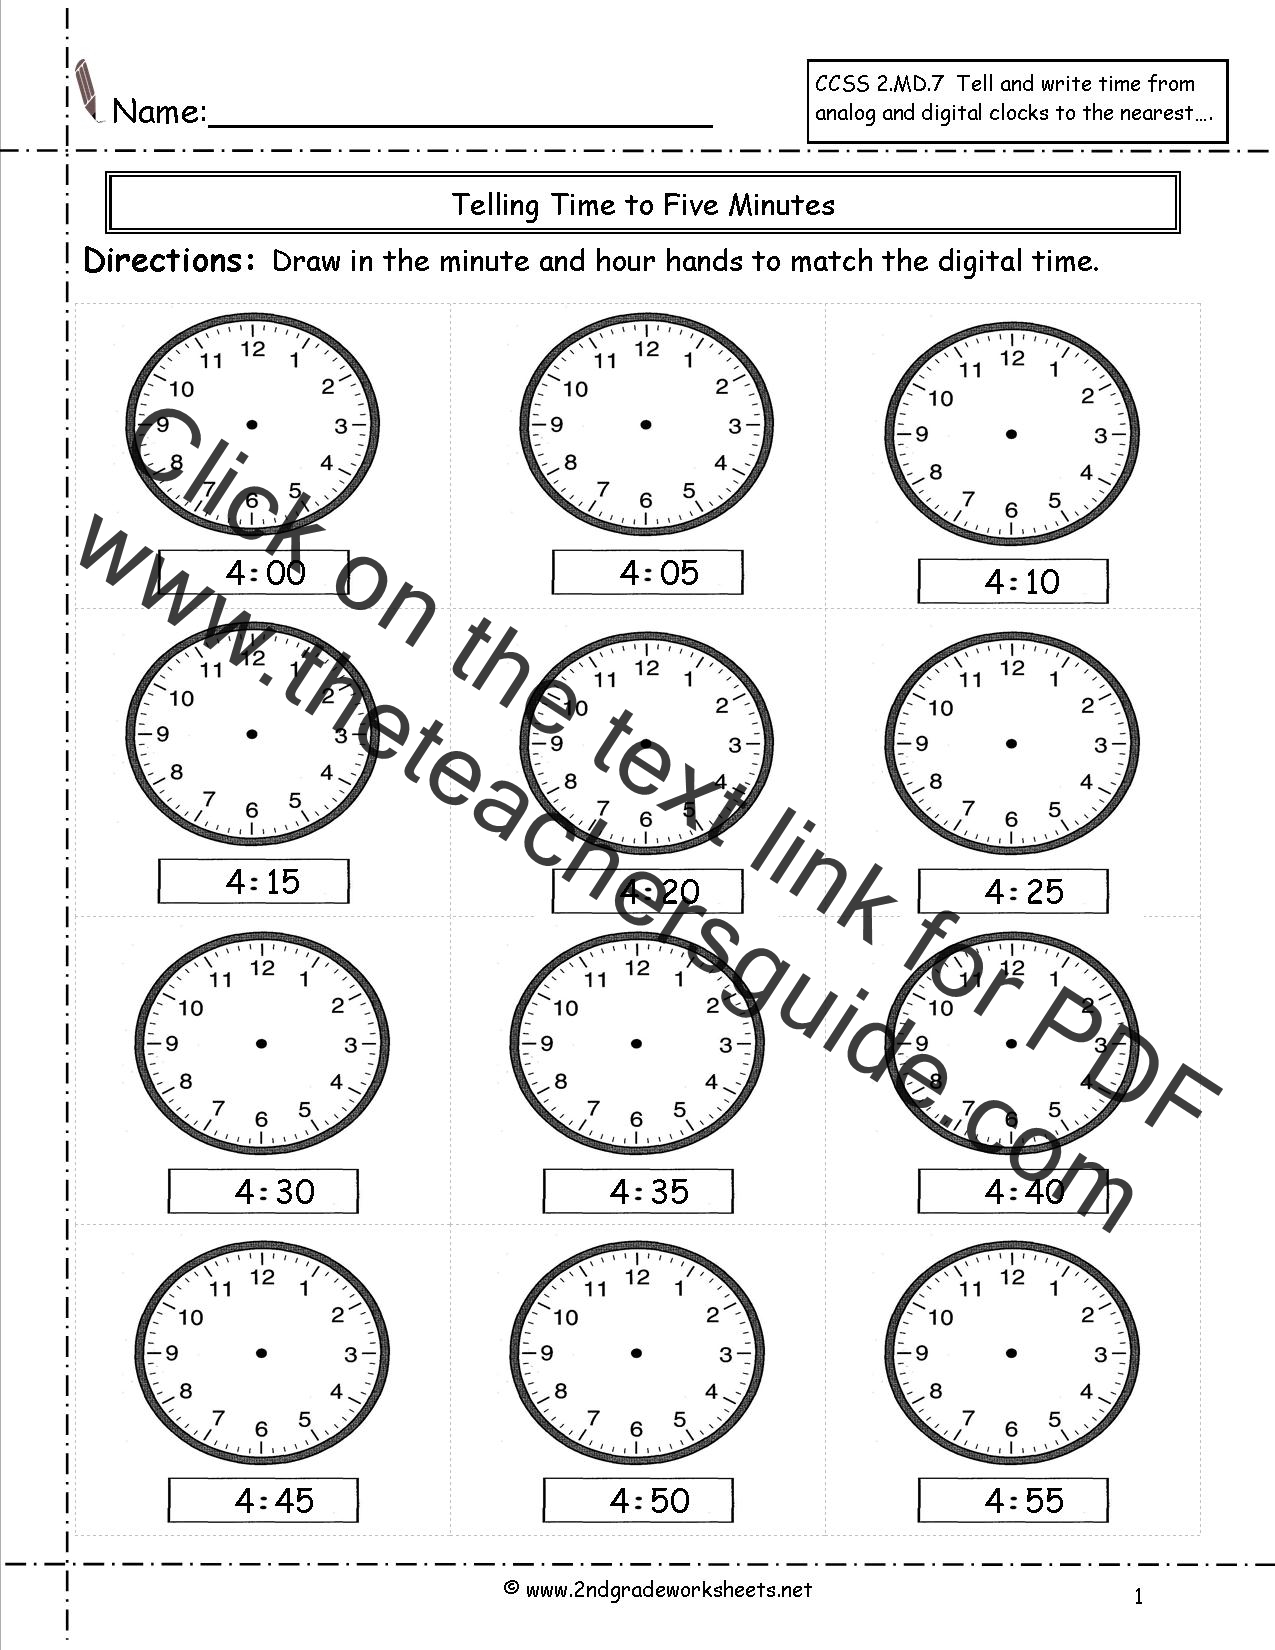 CCSS 2MD7 Worksheets Telling Time to Five Minutes Worksheets – Worksheets on Telling Time